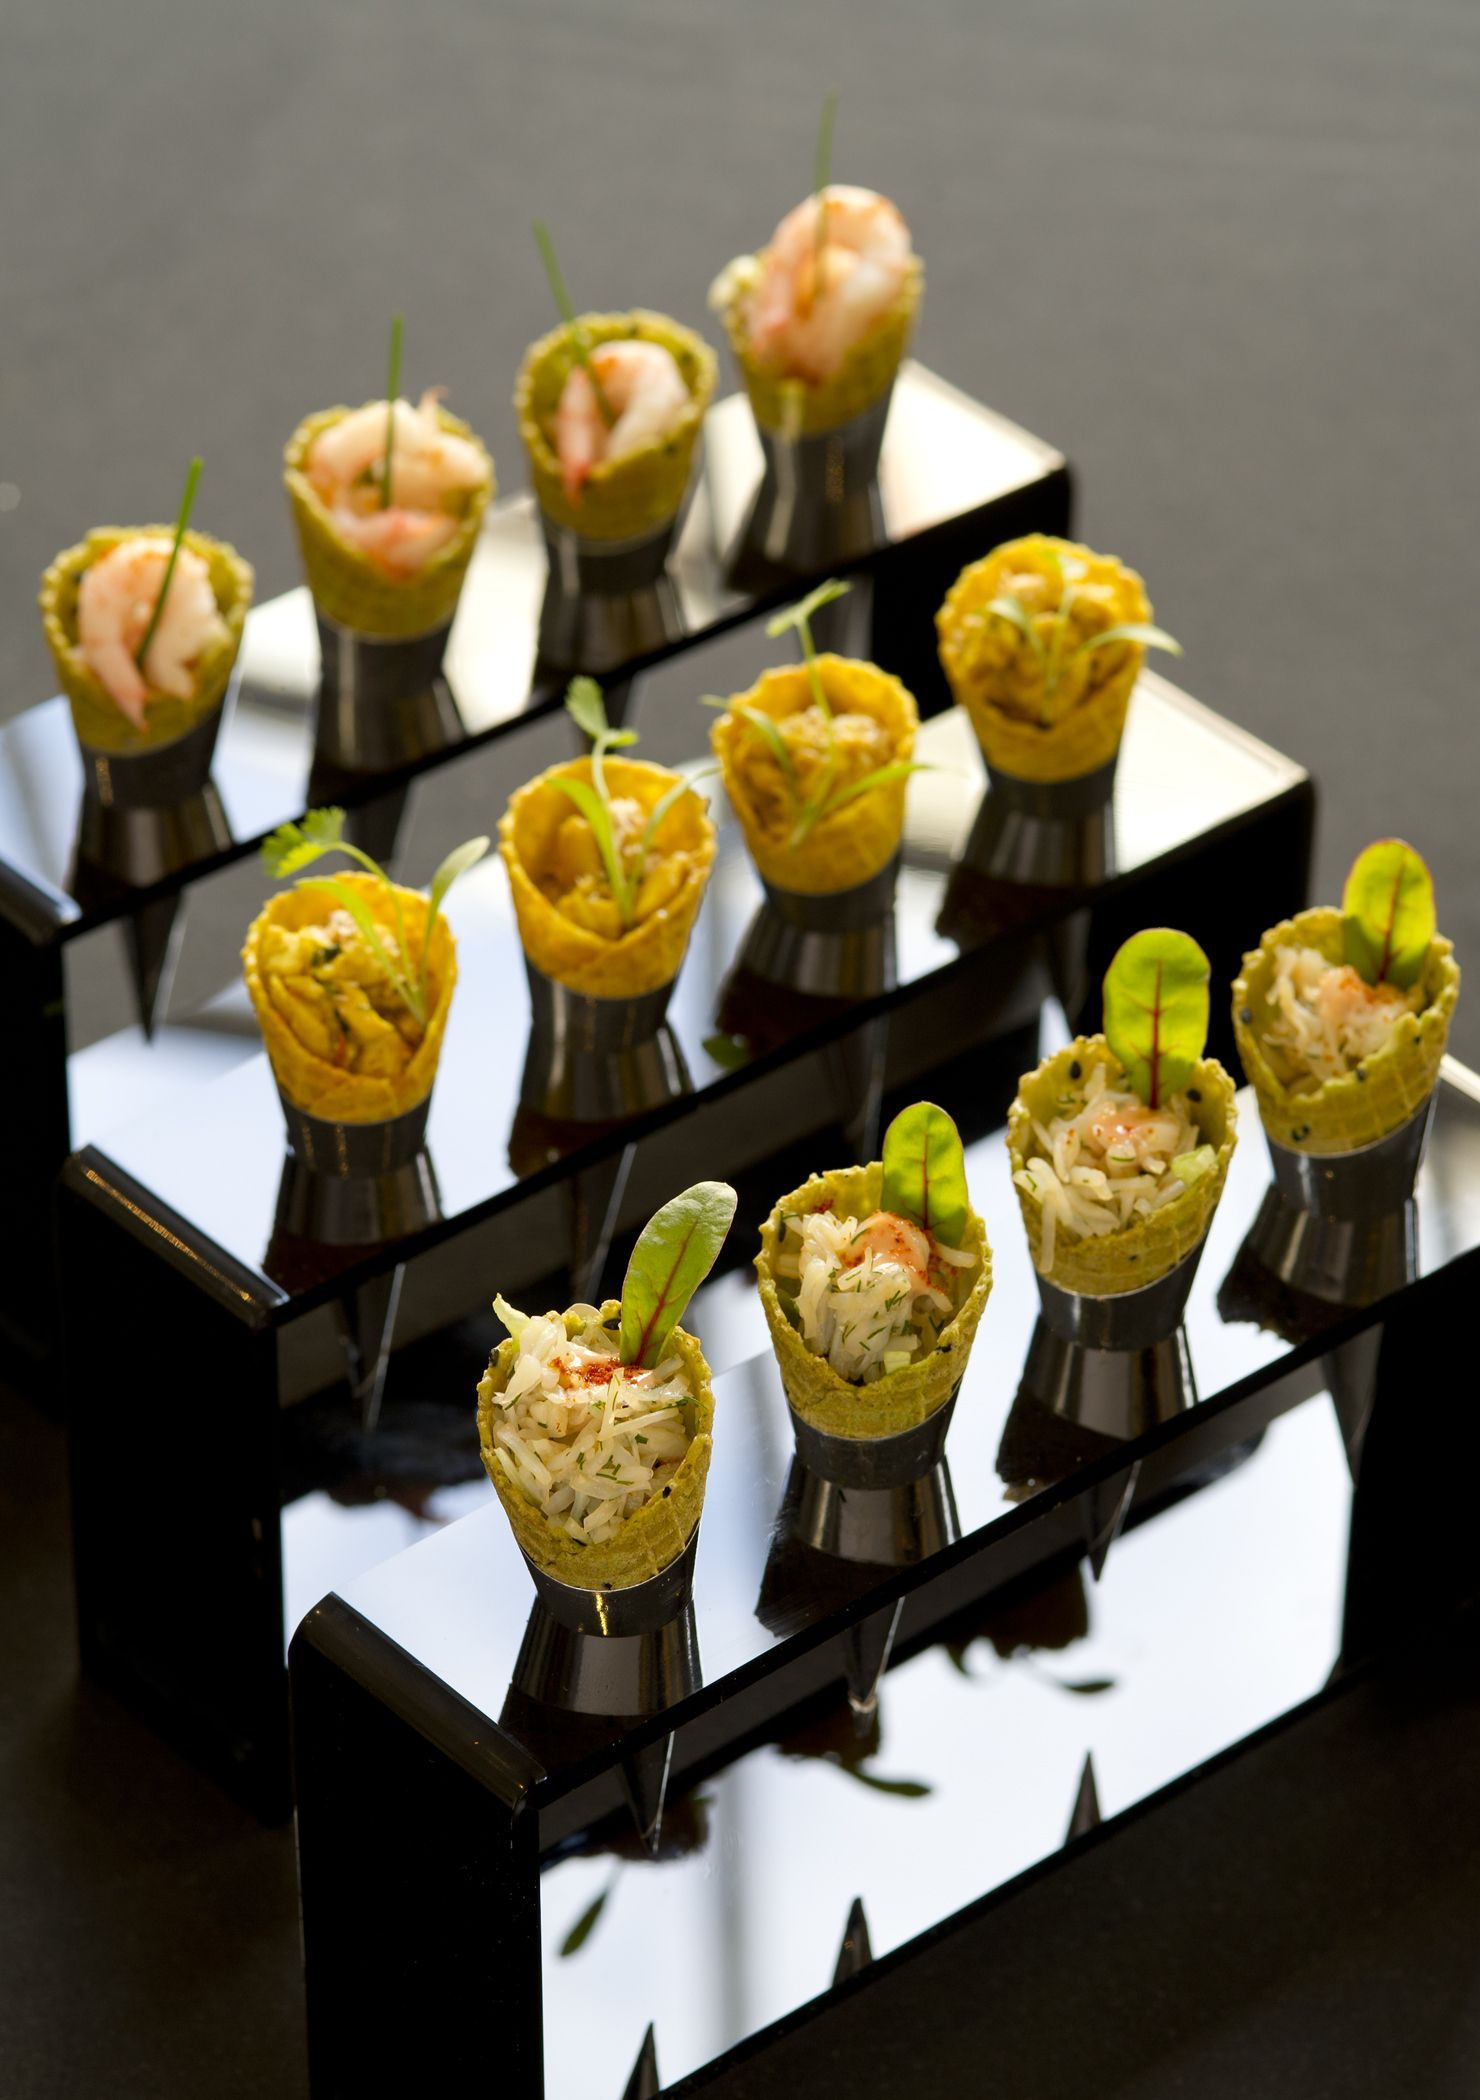 195 Piccadilly canapes Coronation Chicken Cones